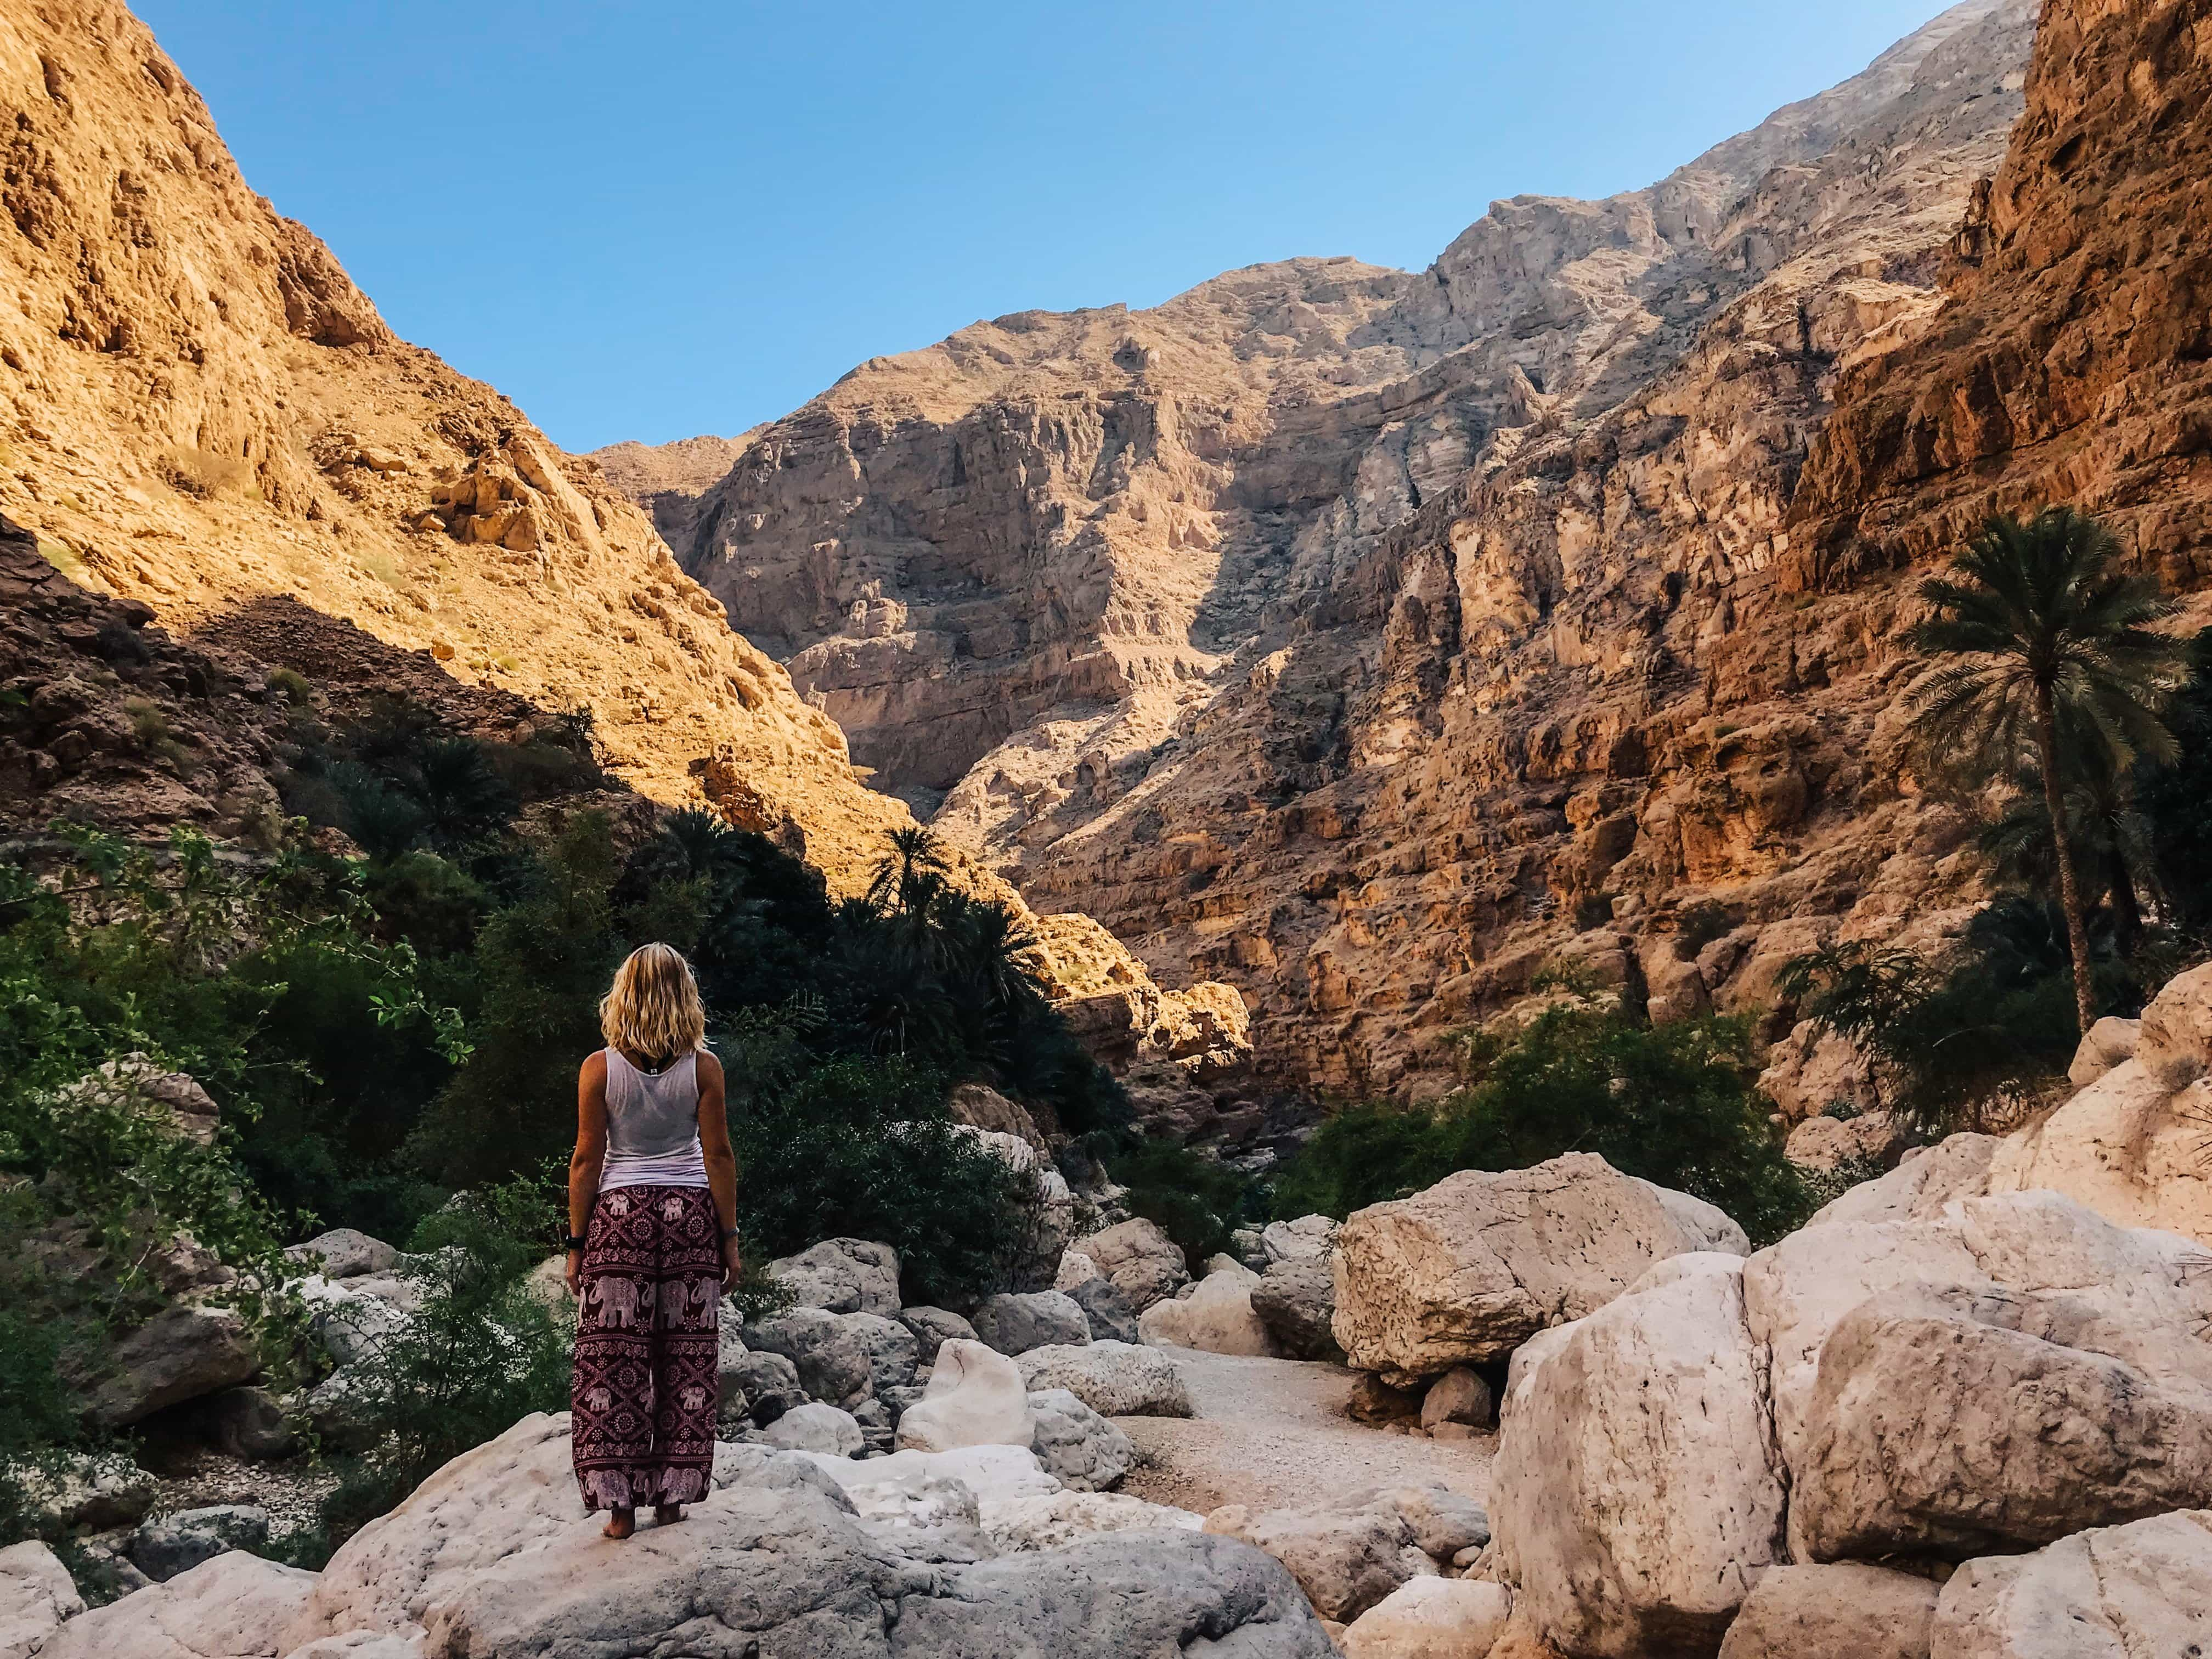 girls looks away from camera and into the canyon in front of her